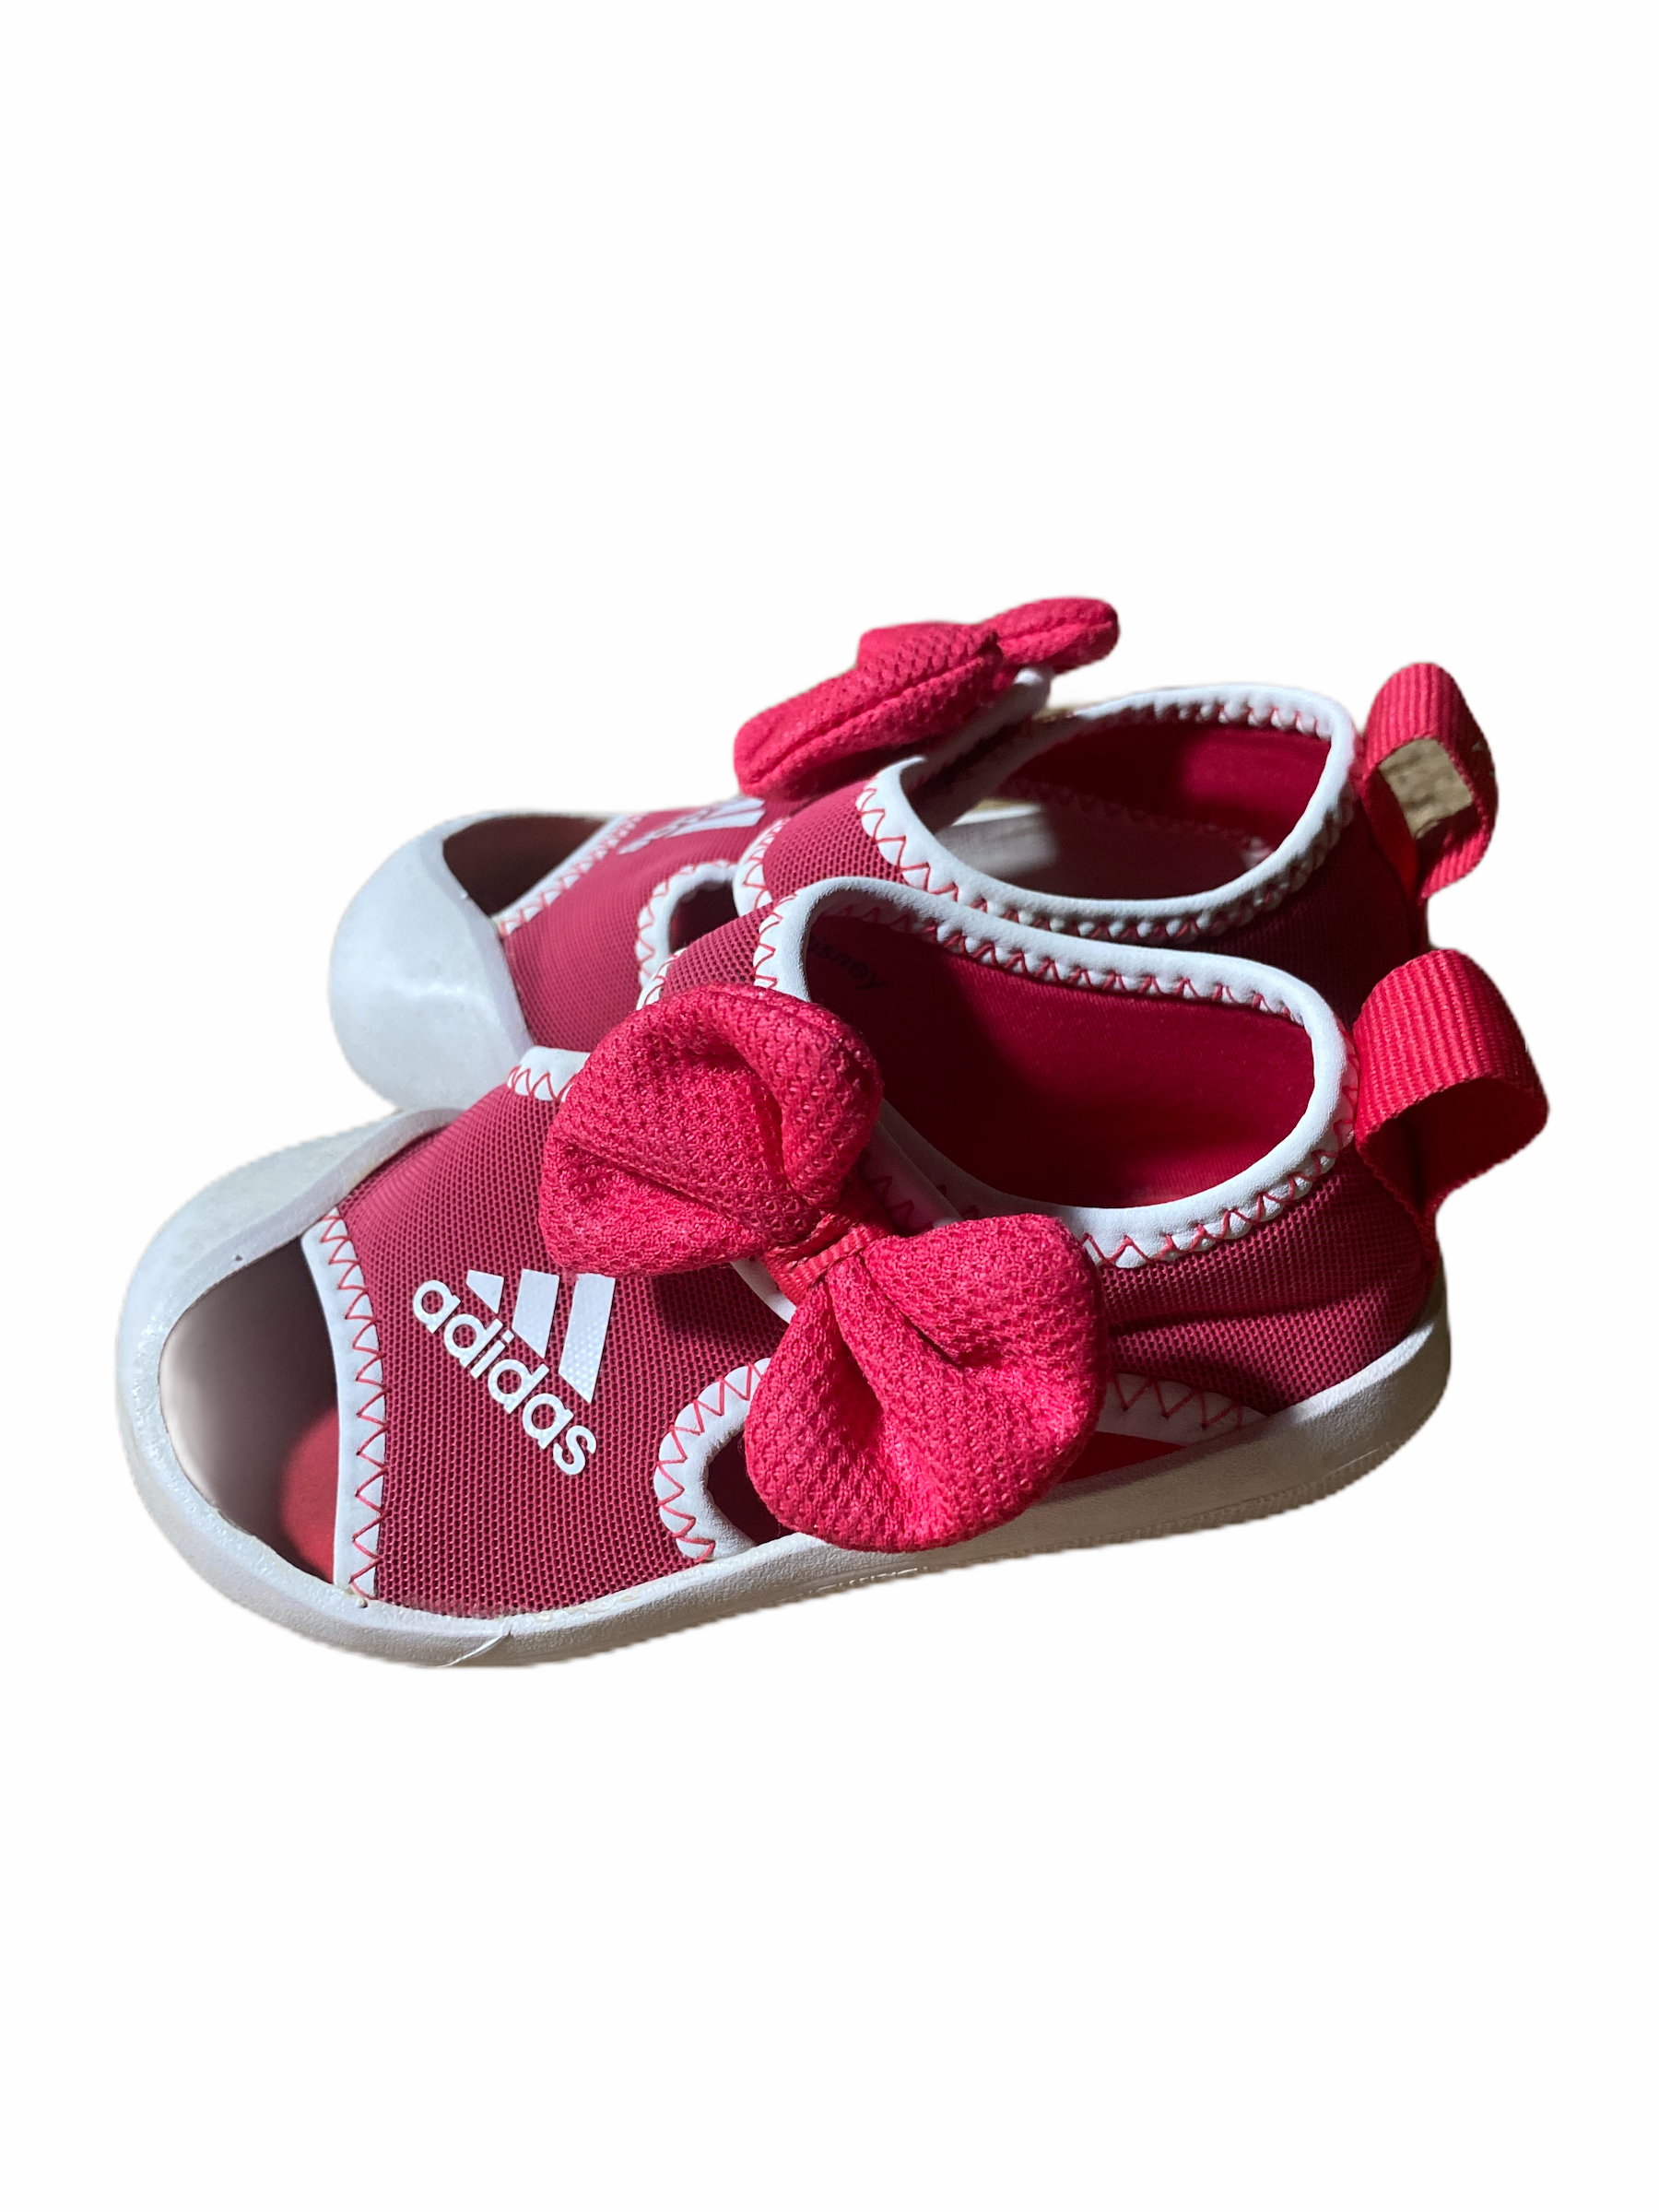 Adidas Pink Sandals (size 6)